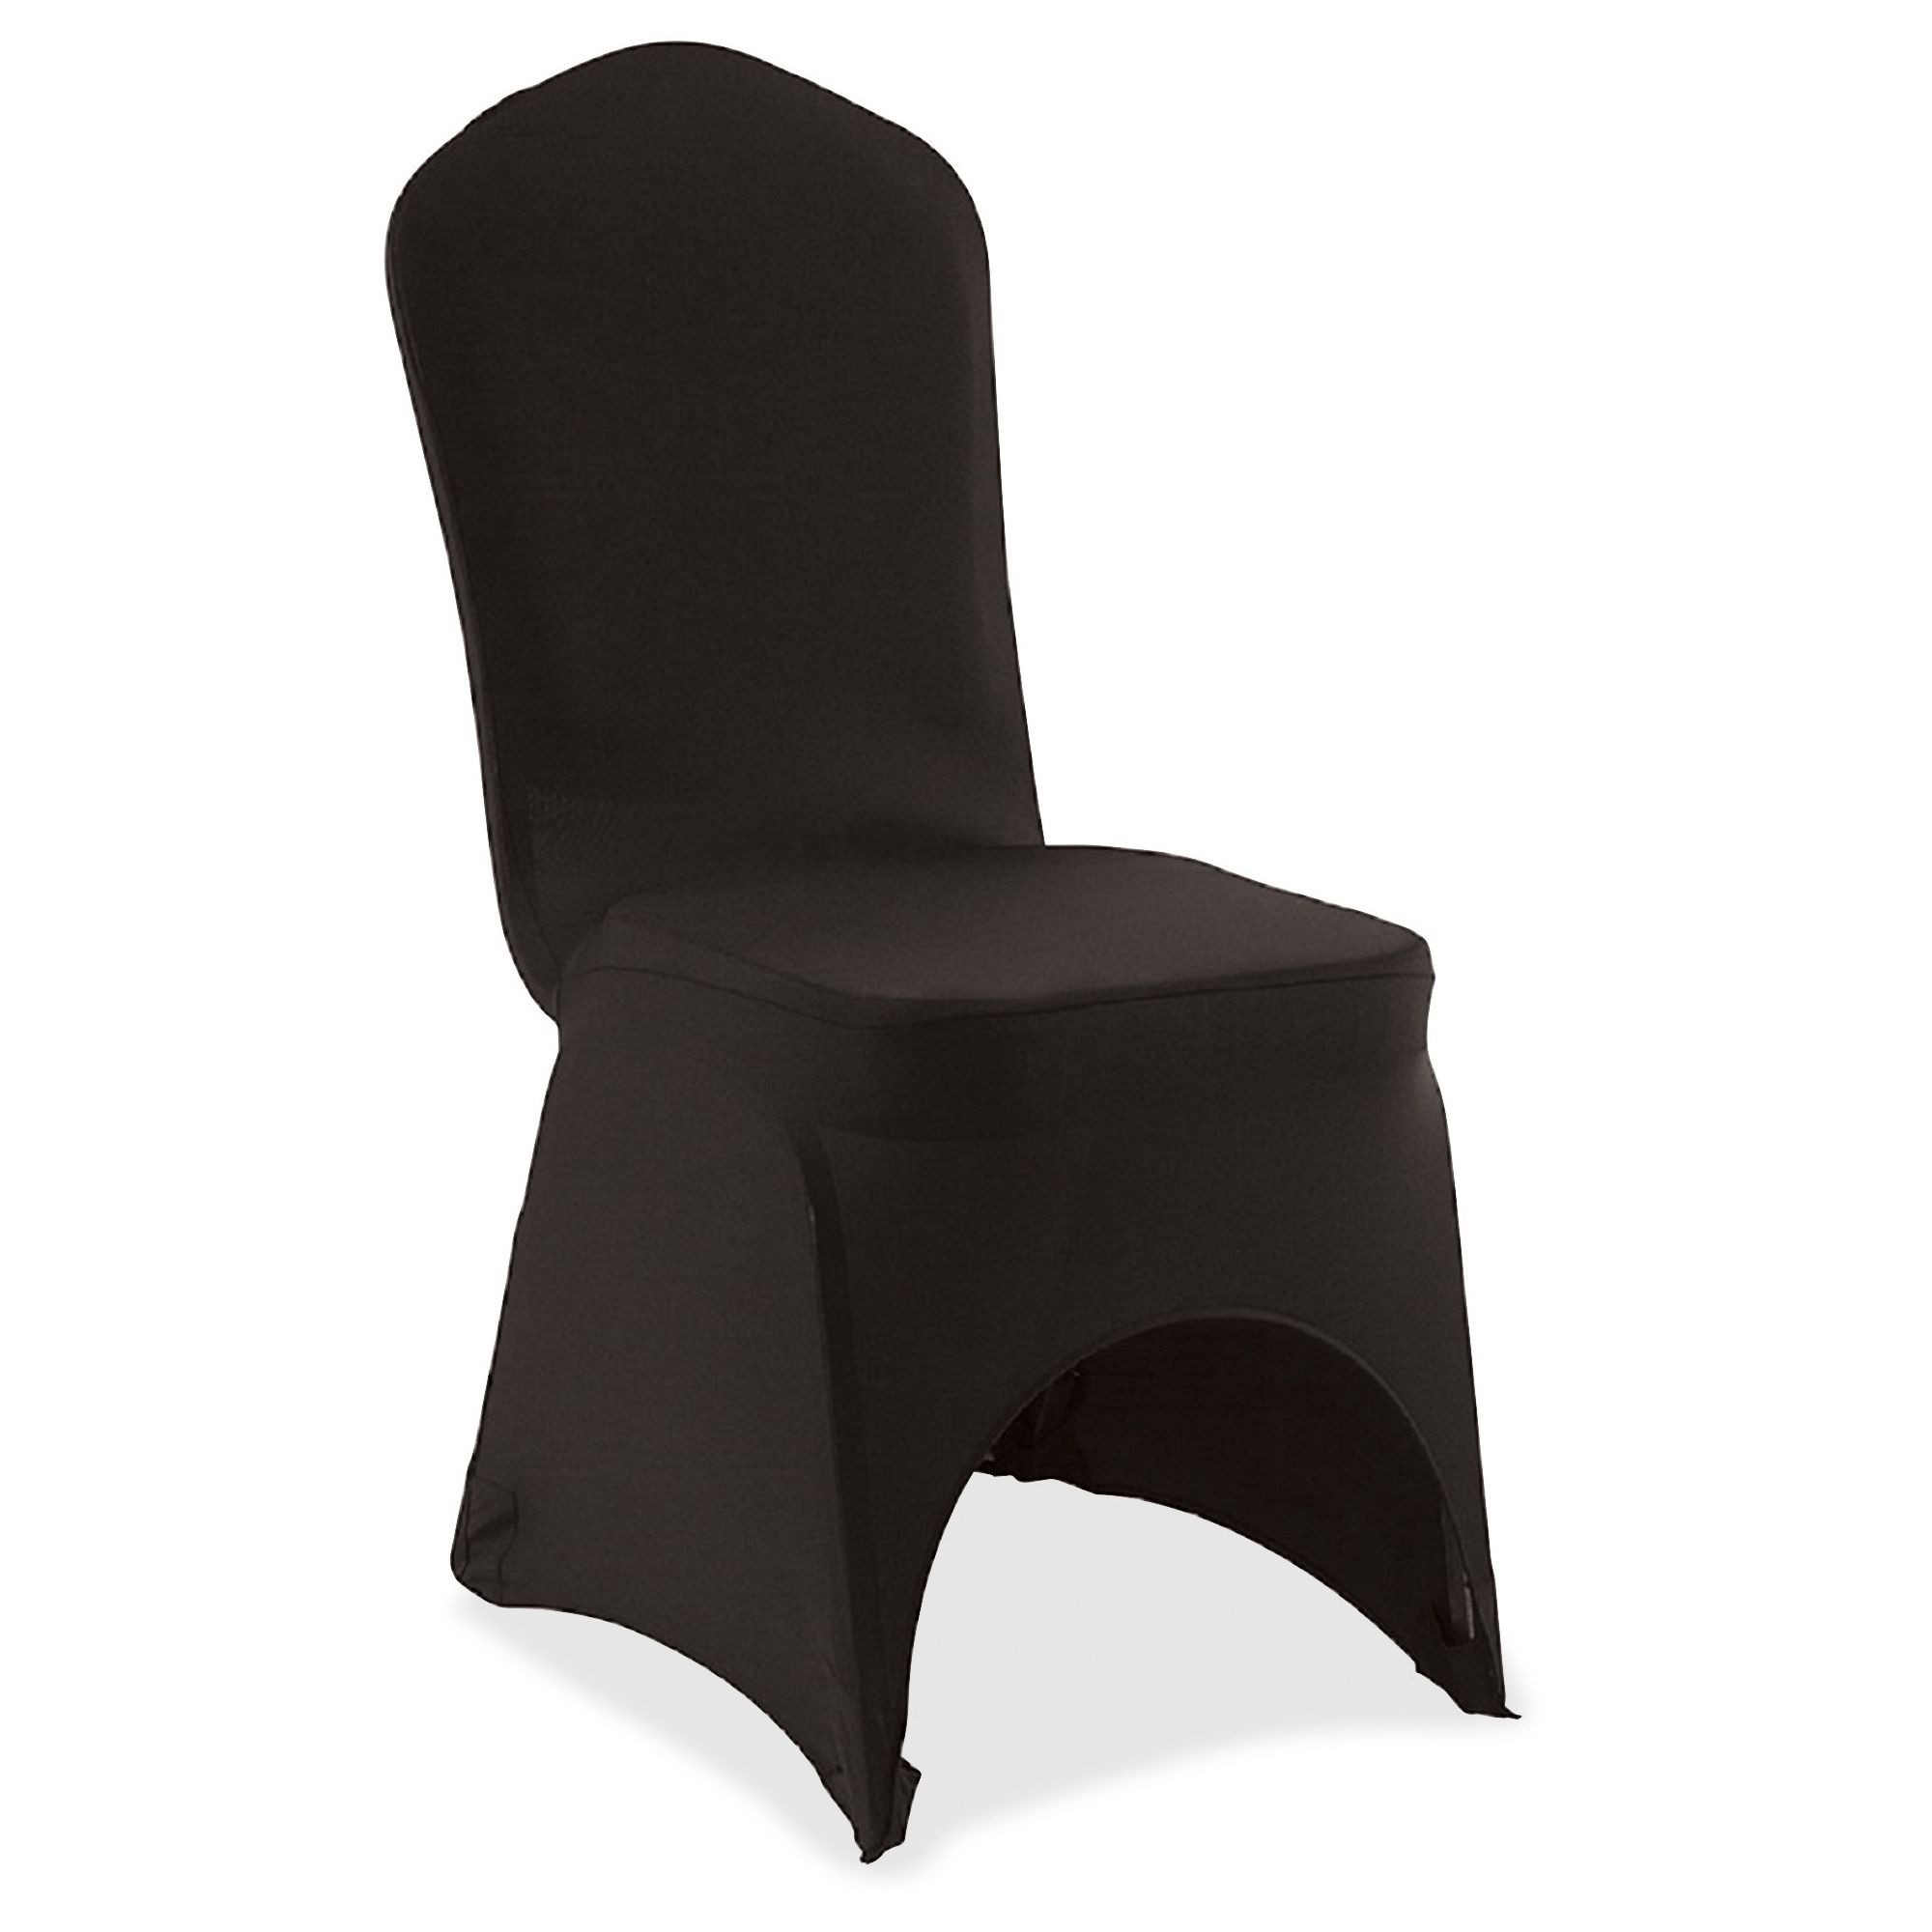 Chair Covers For Weddings Pinterest Parisian Cafe Table And Chairs Iceberg Banquet Cover